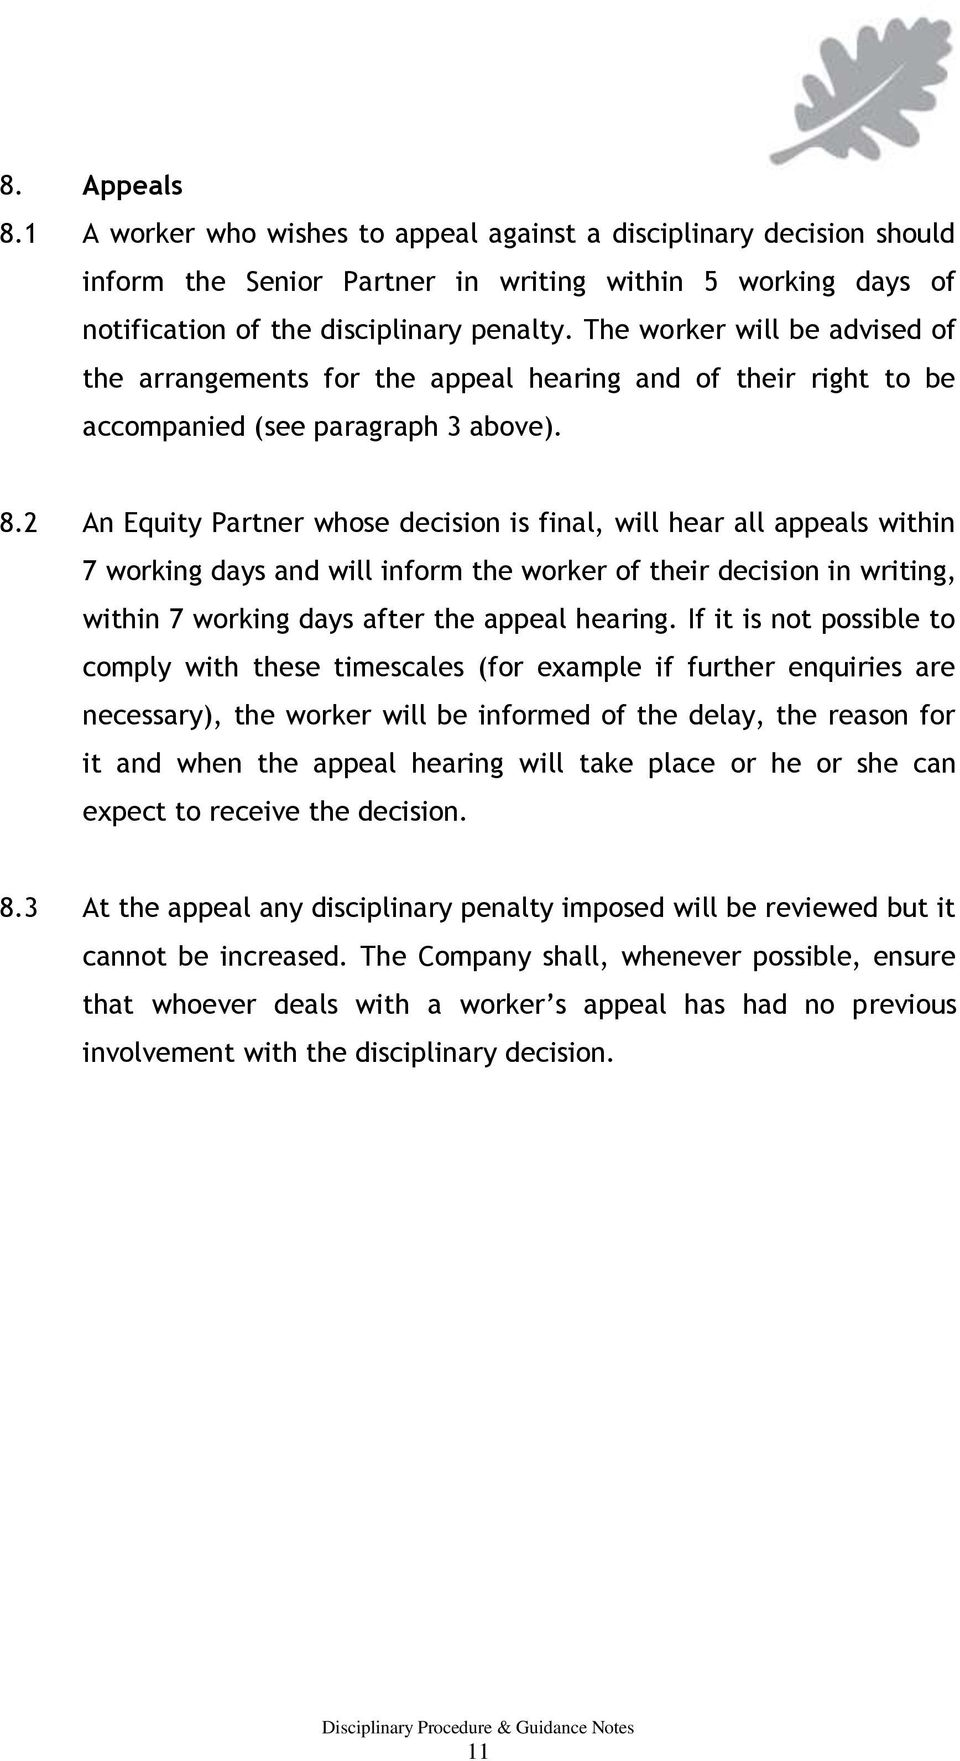 2 An Equity Partner whose decision is final, will hear all appeals within 7 working days and will inform the worker of their decision in writing, within 7 working days after the appeal hearing.